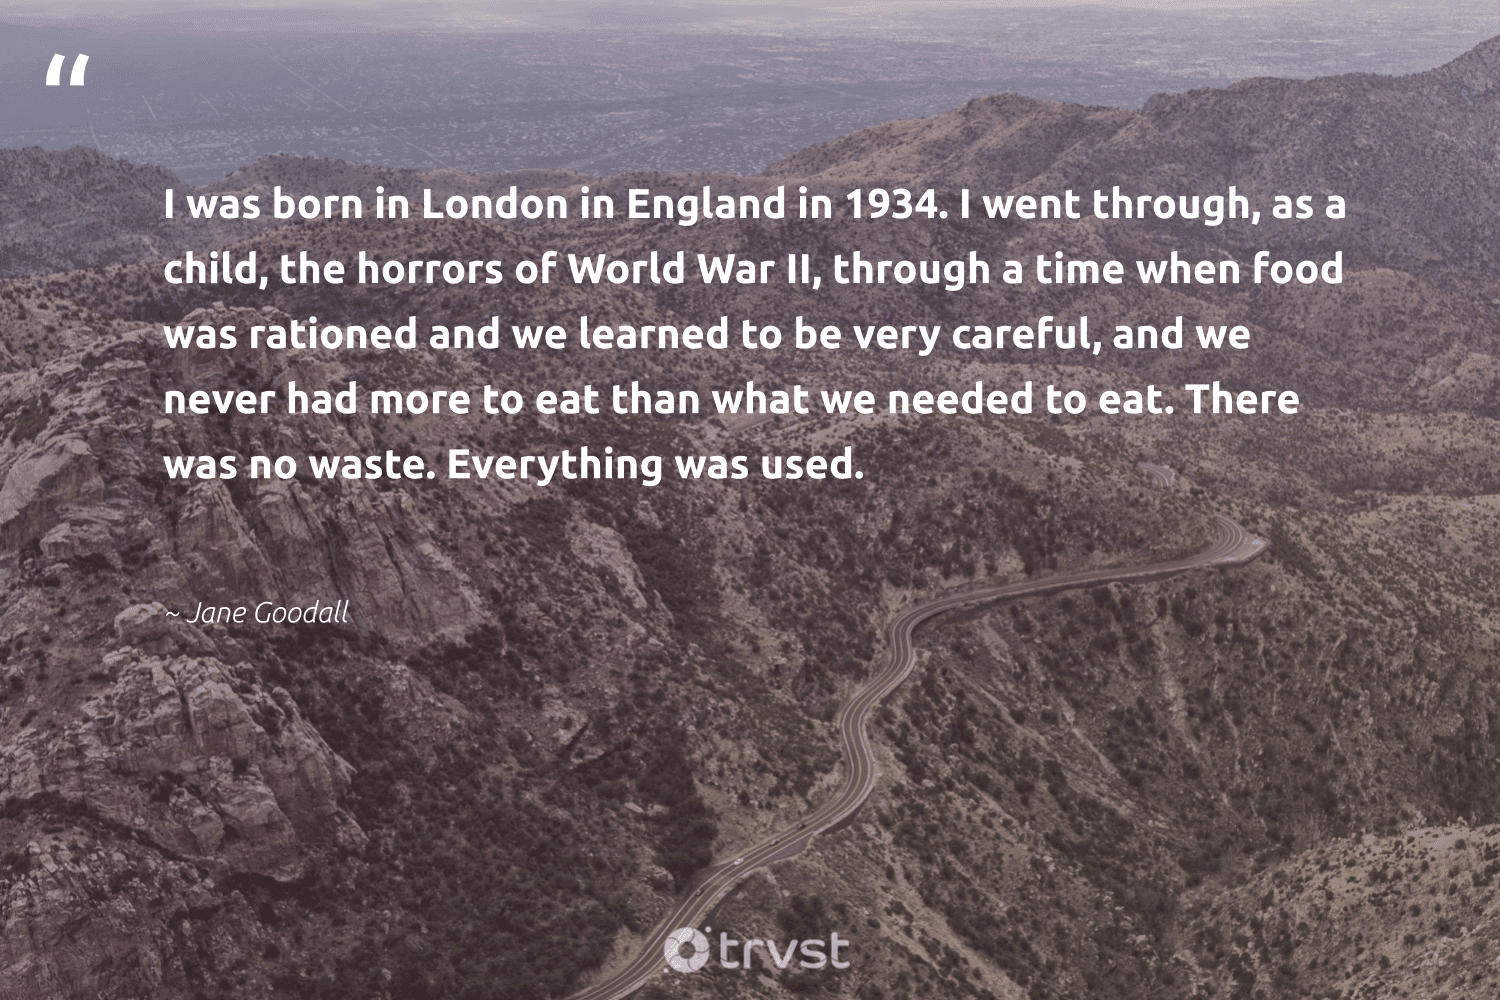 """""""I was born in London in England in 1934. I went through, as a child, the horrors of World War II, through a time when food was rationed and we learned to be very careful, and we never had more to eat than what we needed to eat. There was no waste. Everything was used.""""  - Jane Goodall #trvst #quotes #waste #food #nowaste #hungry #environmentallyfriendly #inclusion #bethechange #foodforthepoor #wastefree #equalrights"""